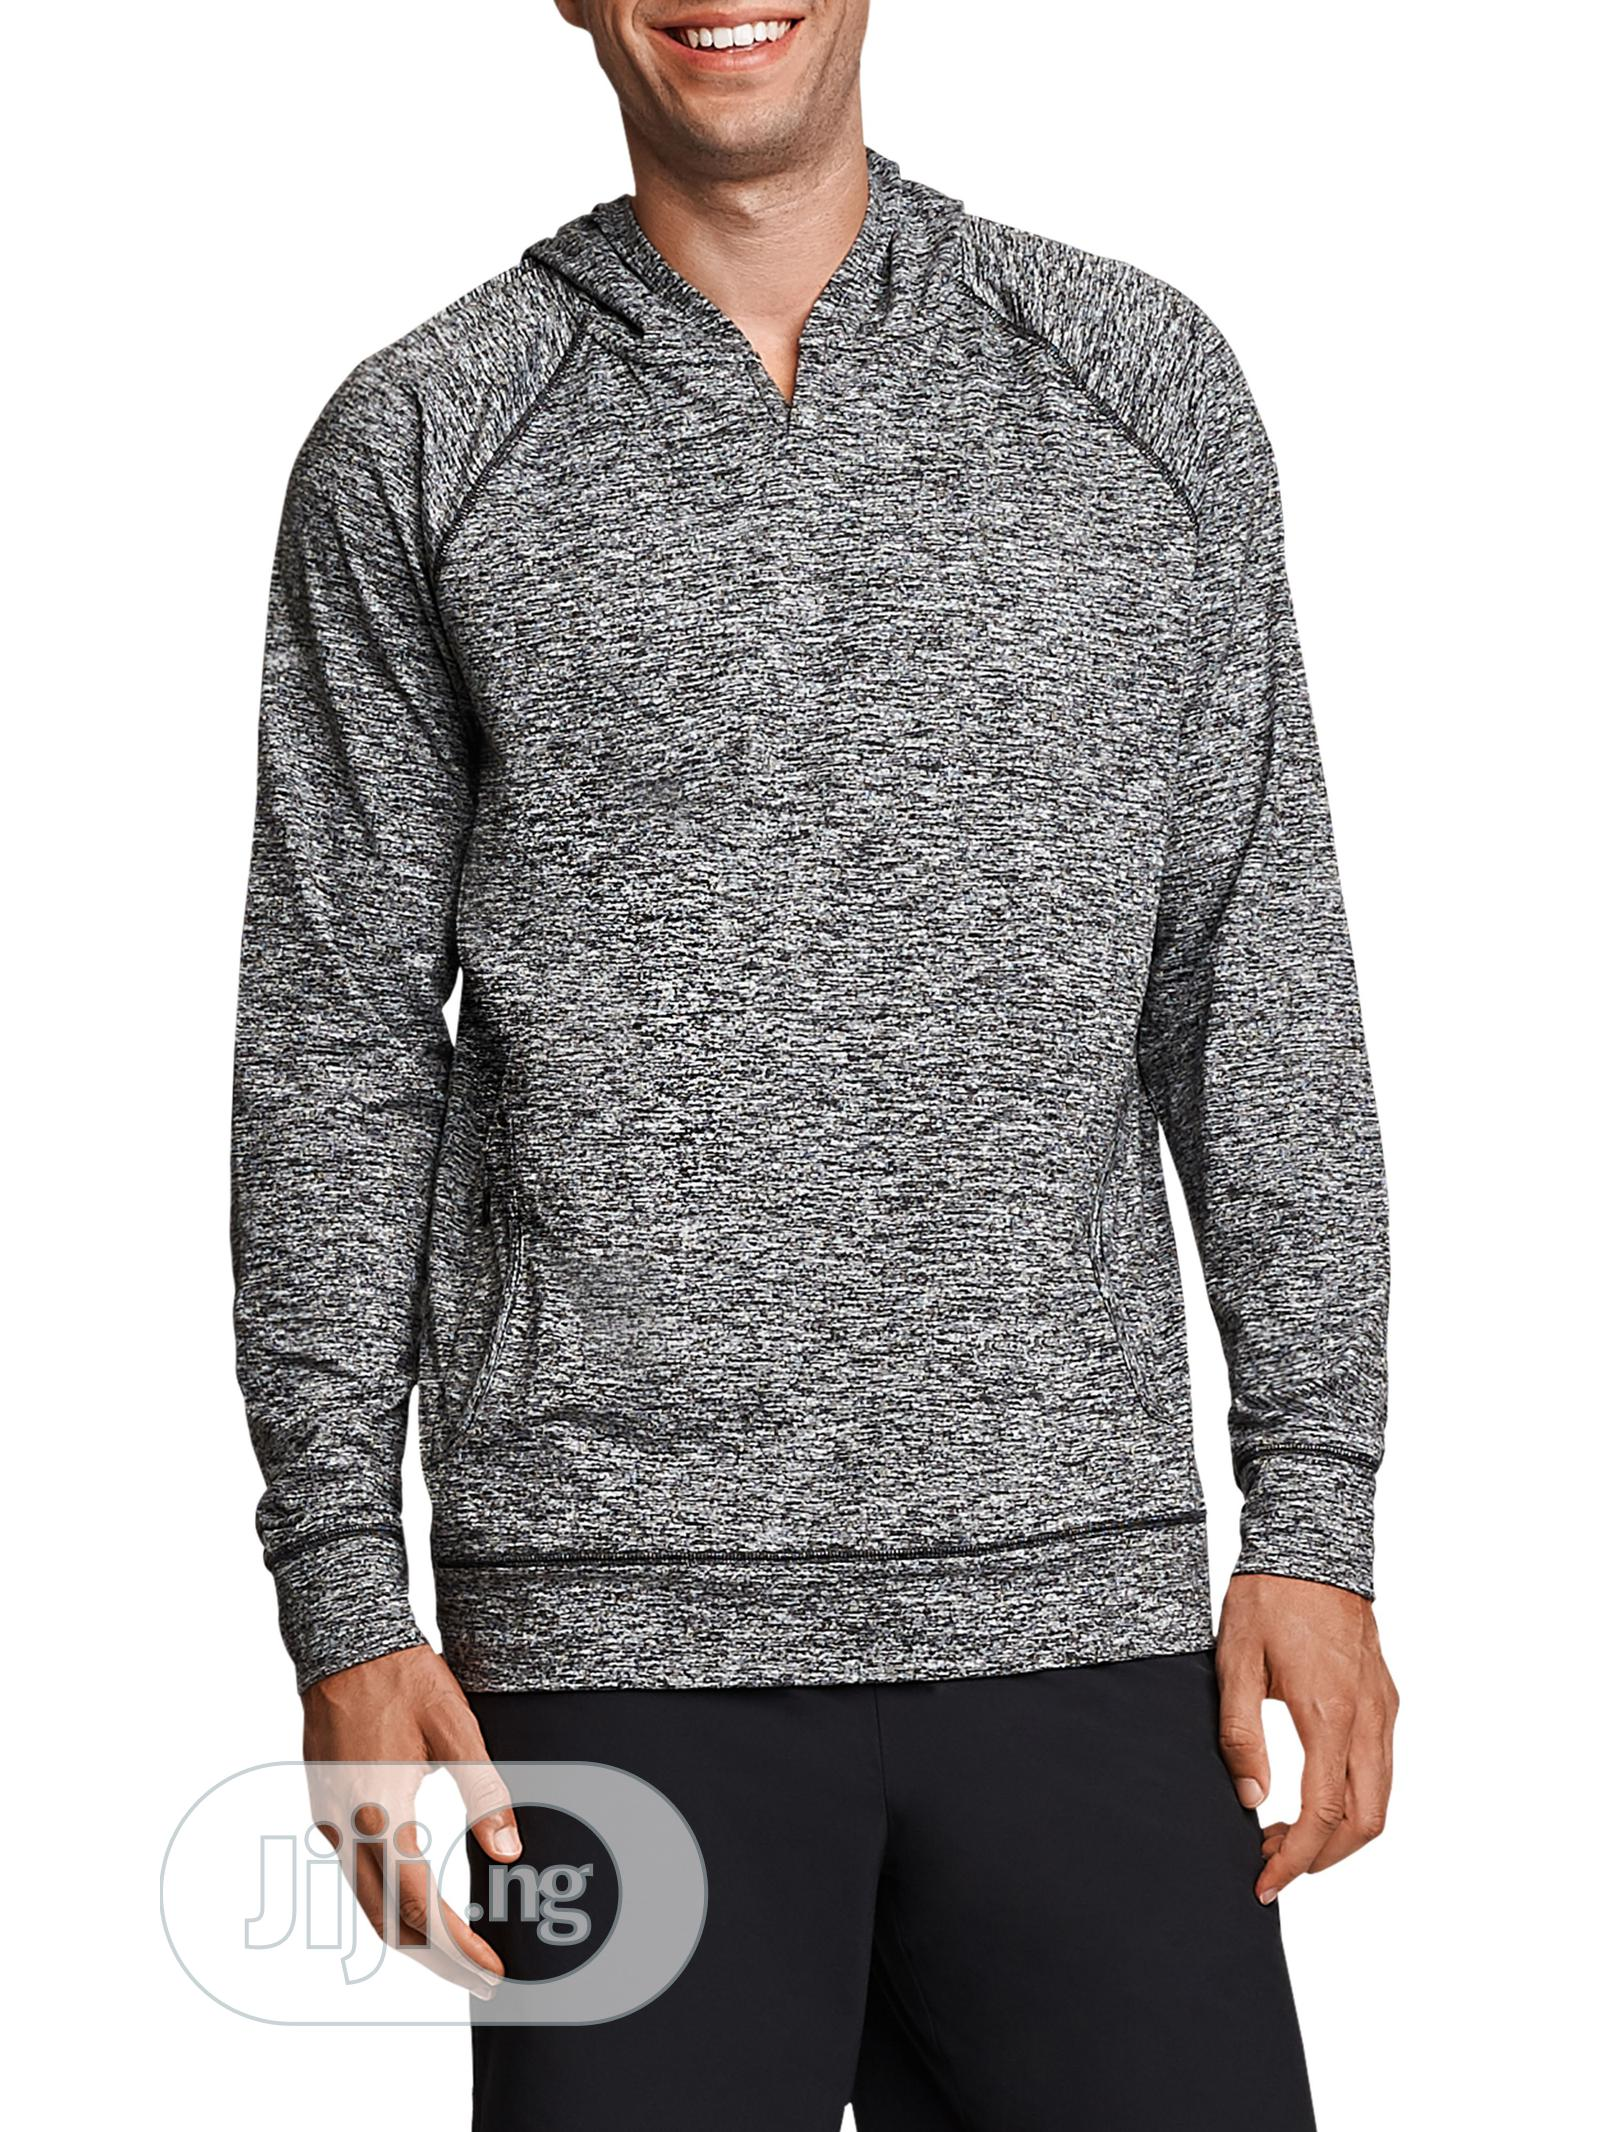 Hoodies Quality Wear for Retail and Wholesale